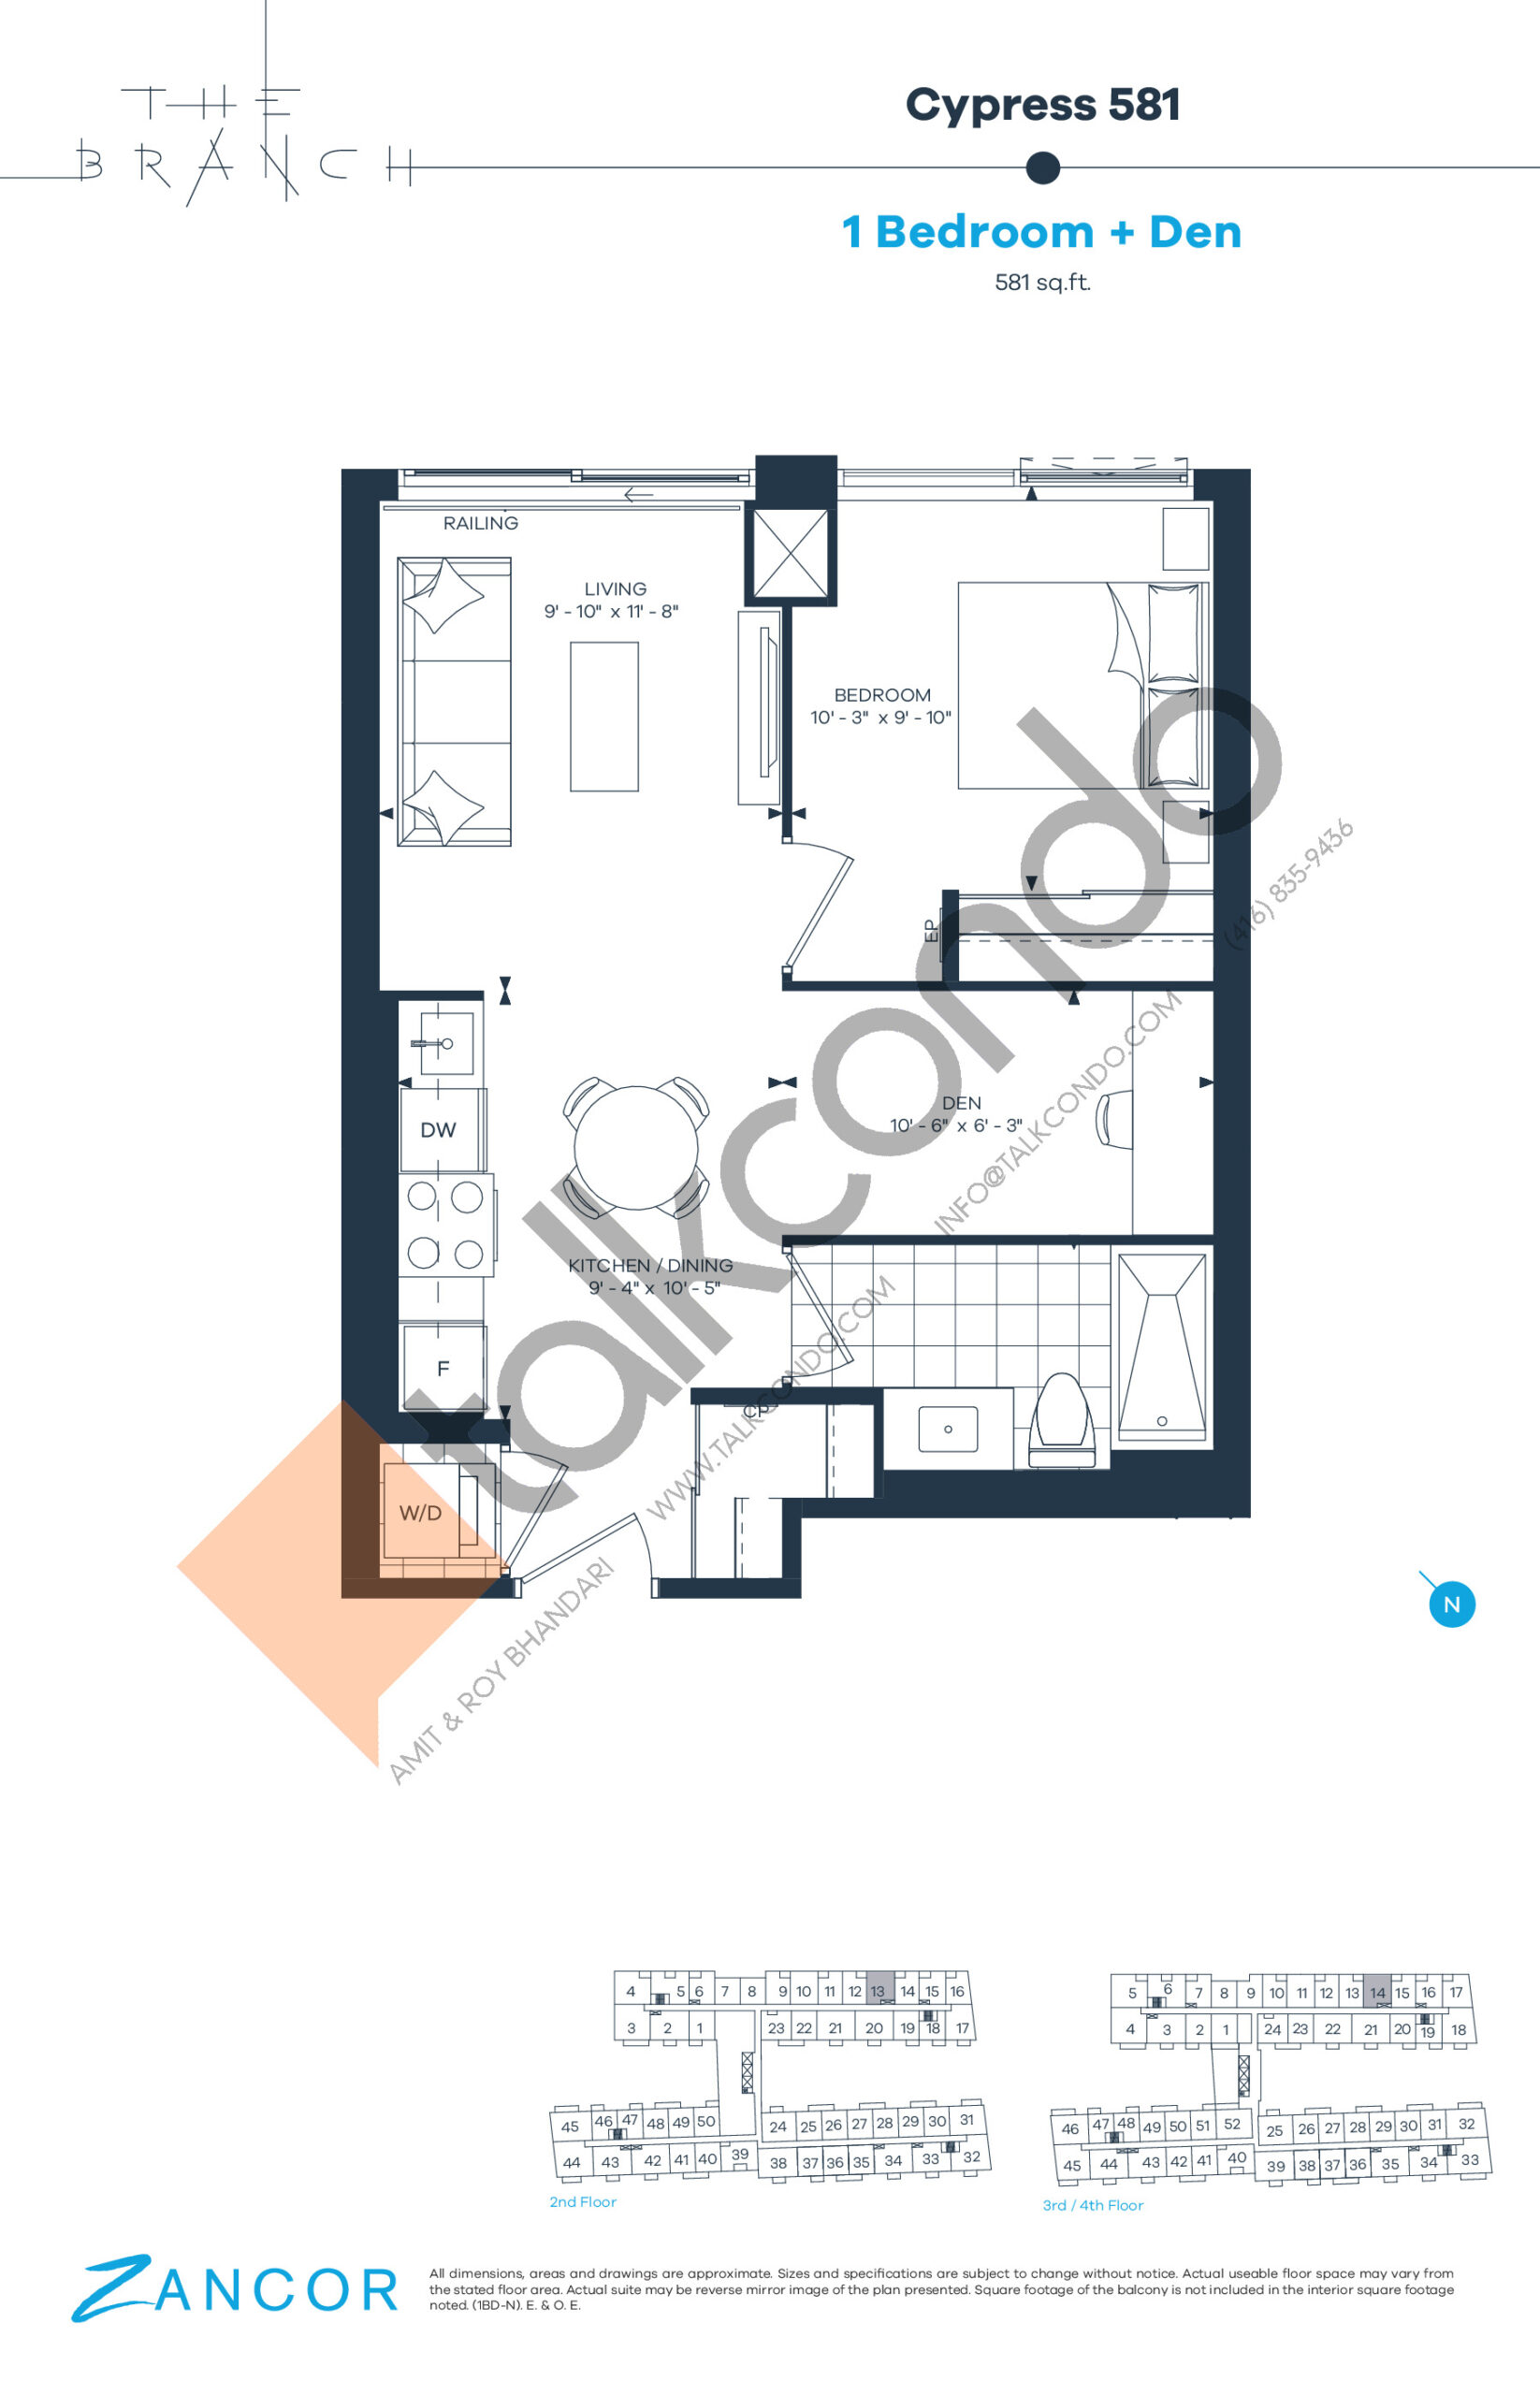 Cypress 581 Floor Plan at The Branch Condos - 581 sq.ft